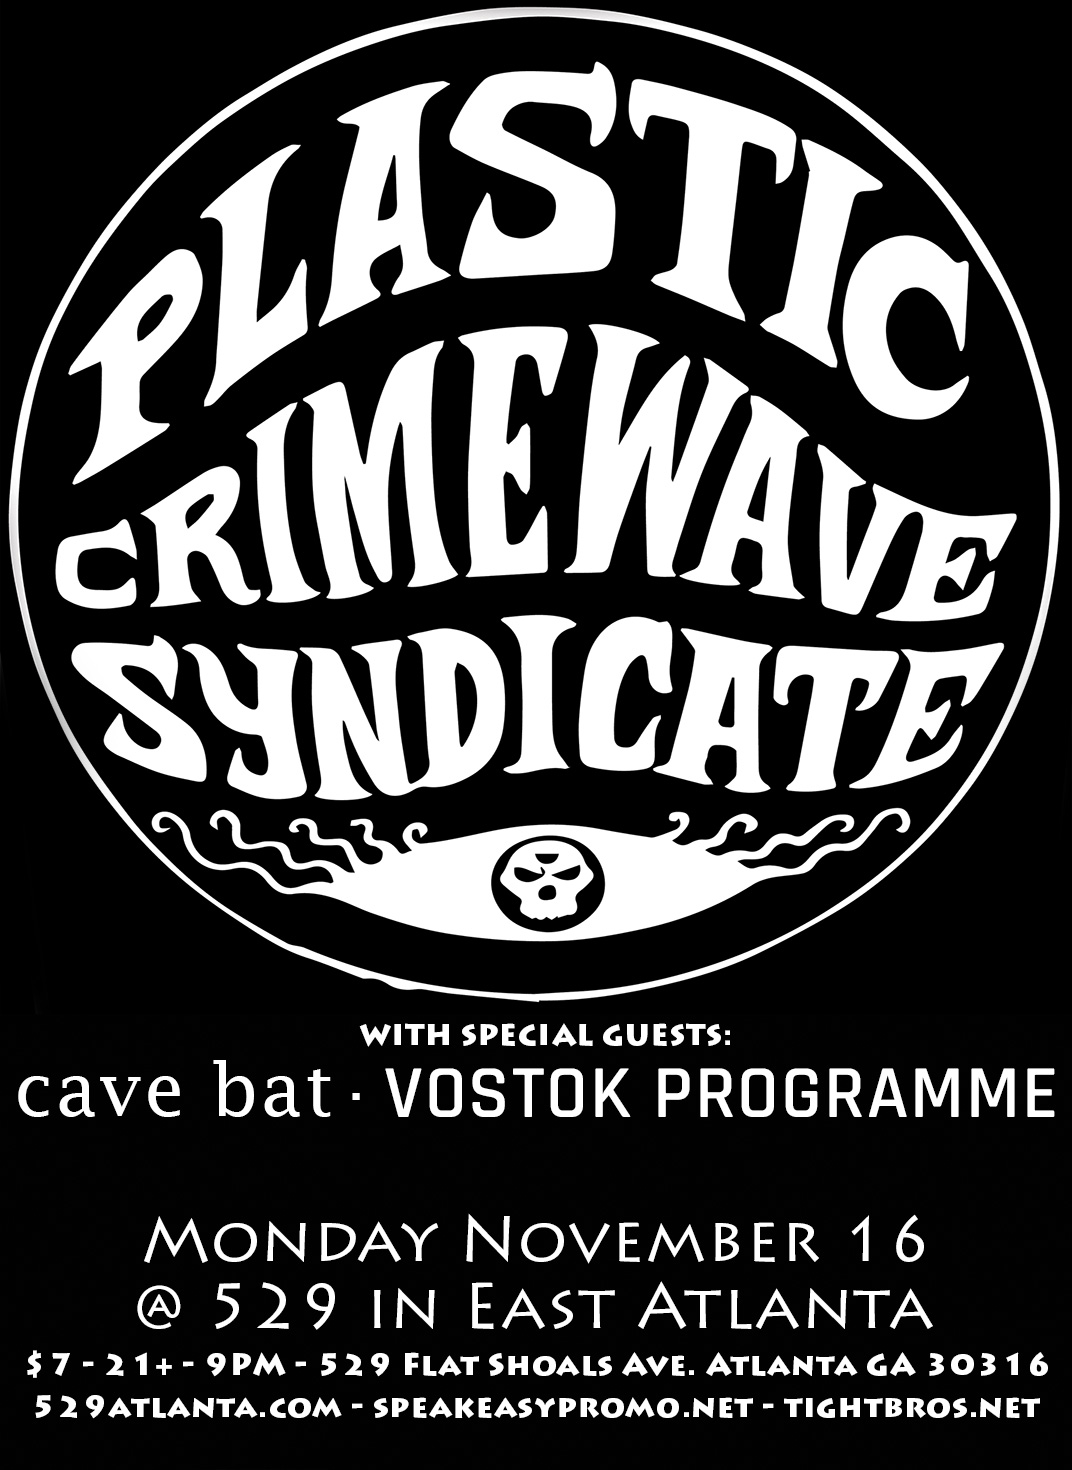 November 16 at 529 in East Atlanta w/ Plastic Crimewave Syndicate!